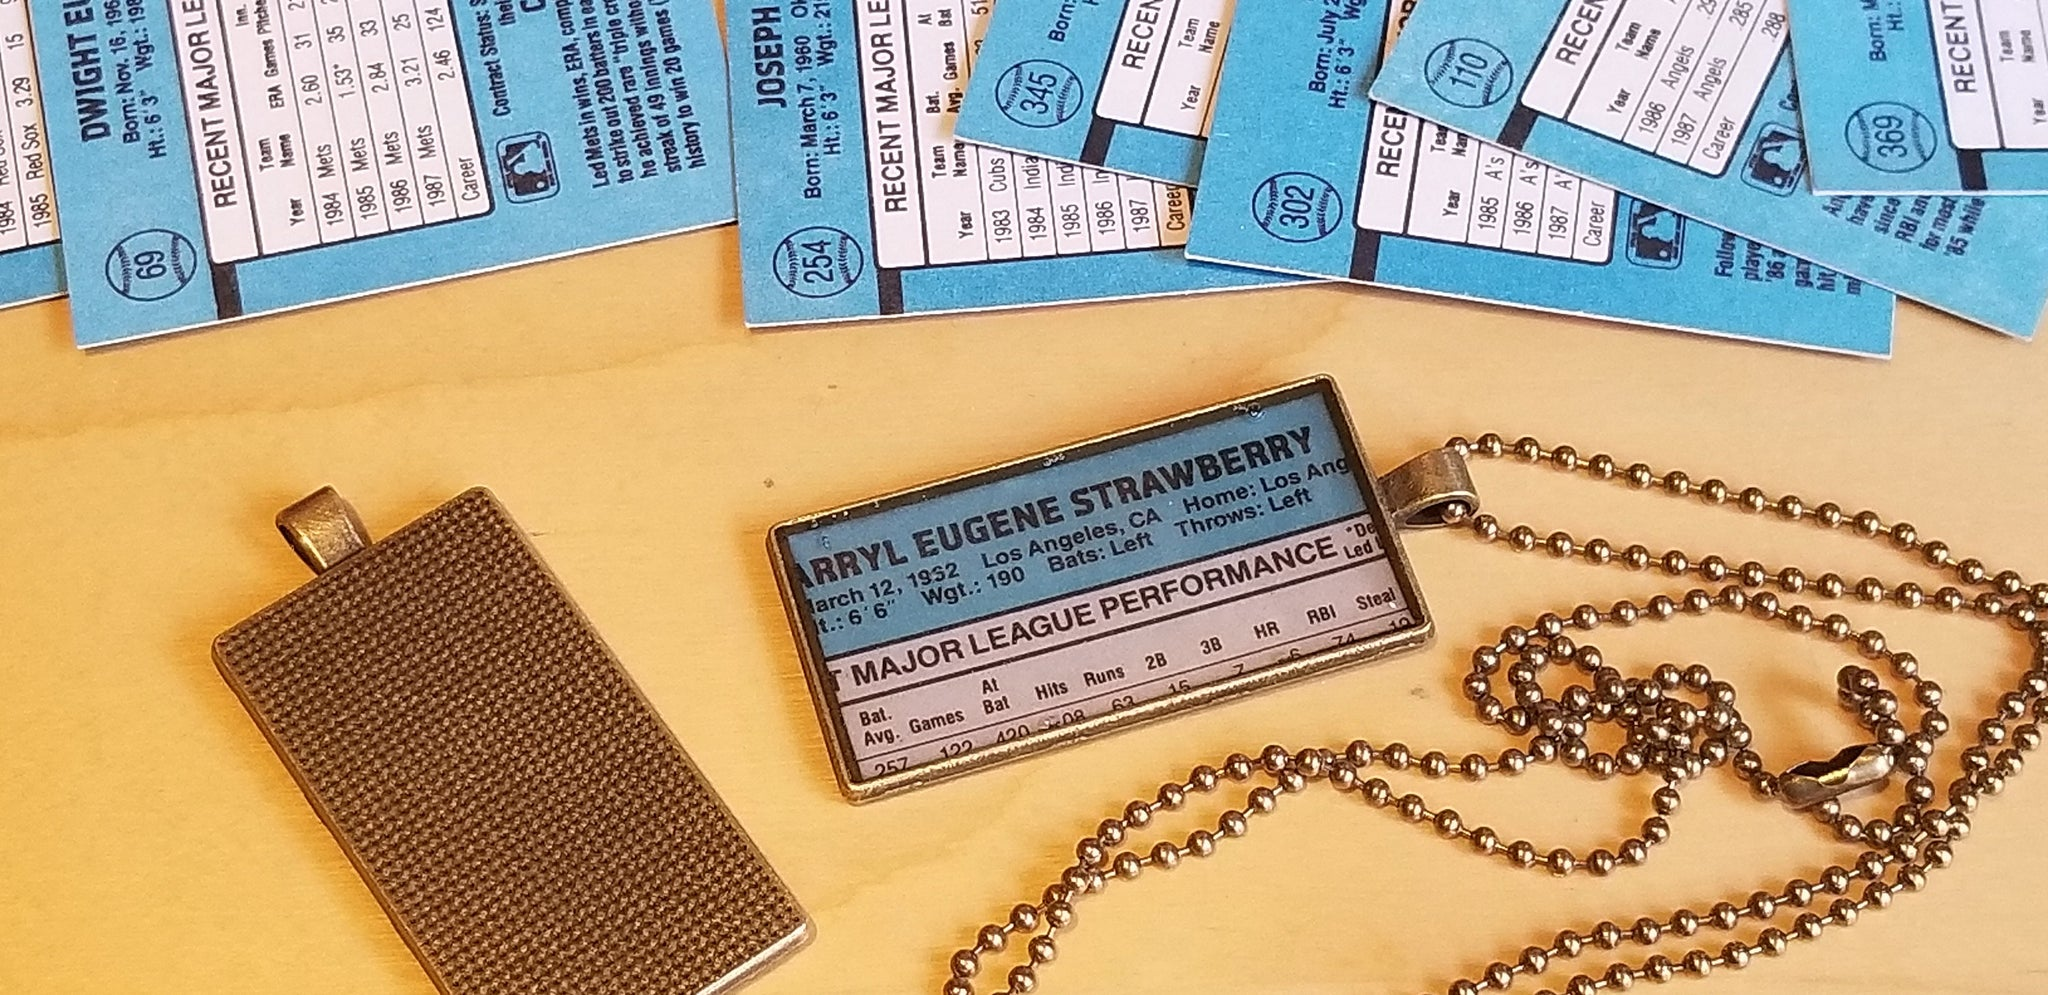 1988 Donruss Pendant Chains - Baseball card art by Matthew Lee Rosen